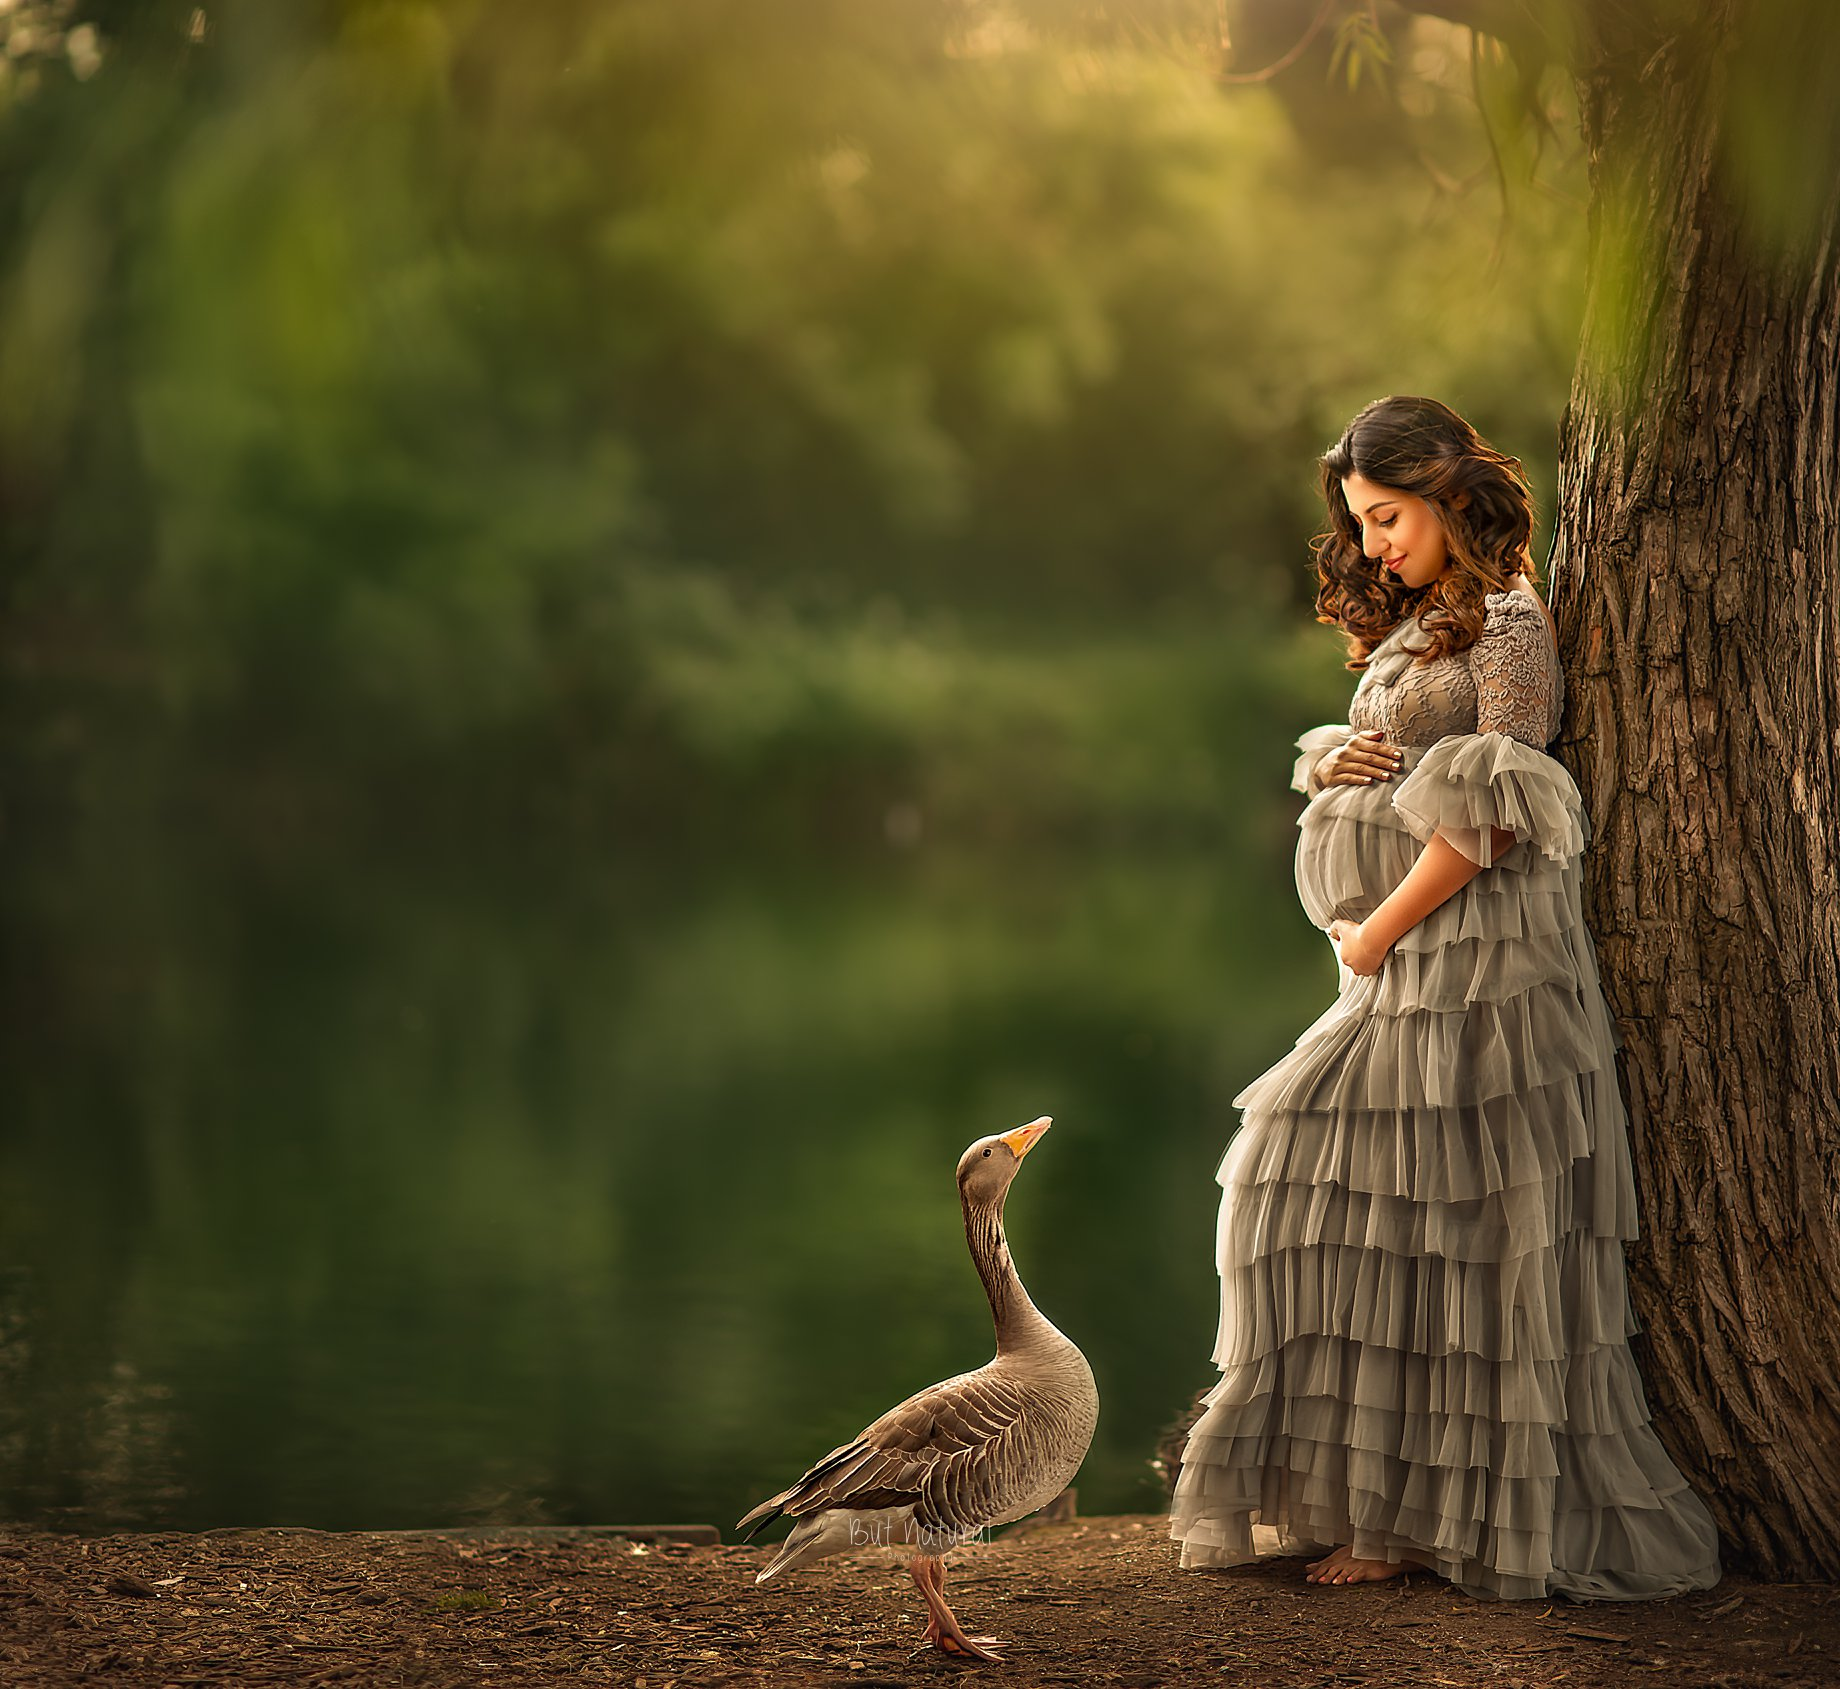 Maternity Photoshoot by Sujata Setia   But Natural Photography